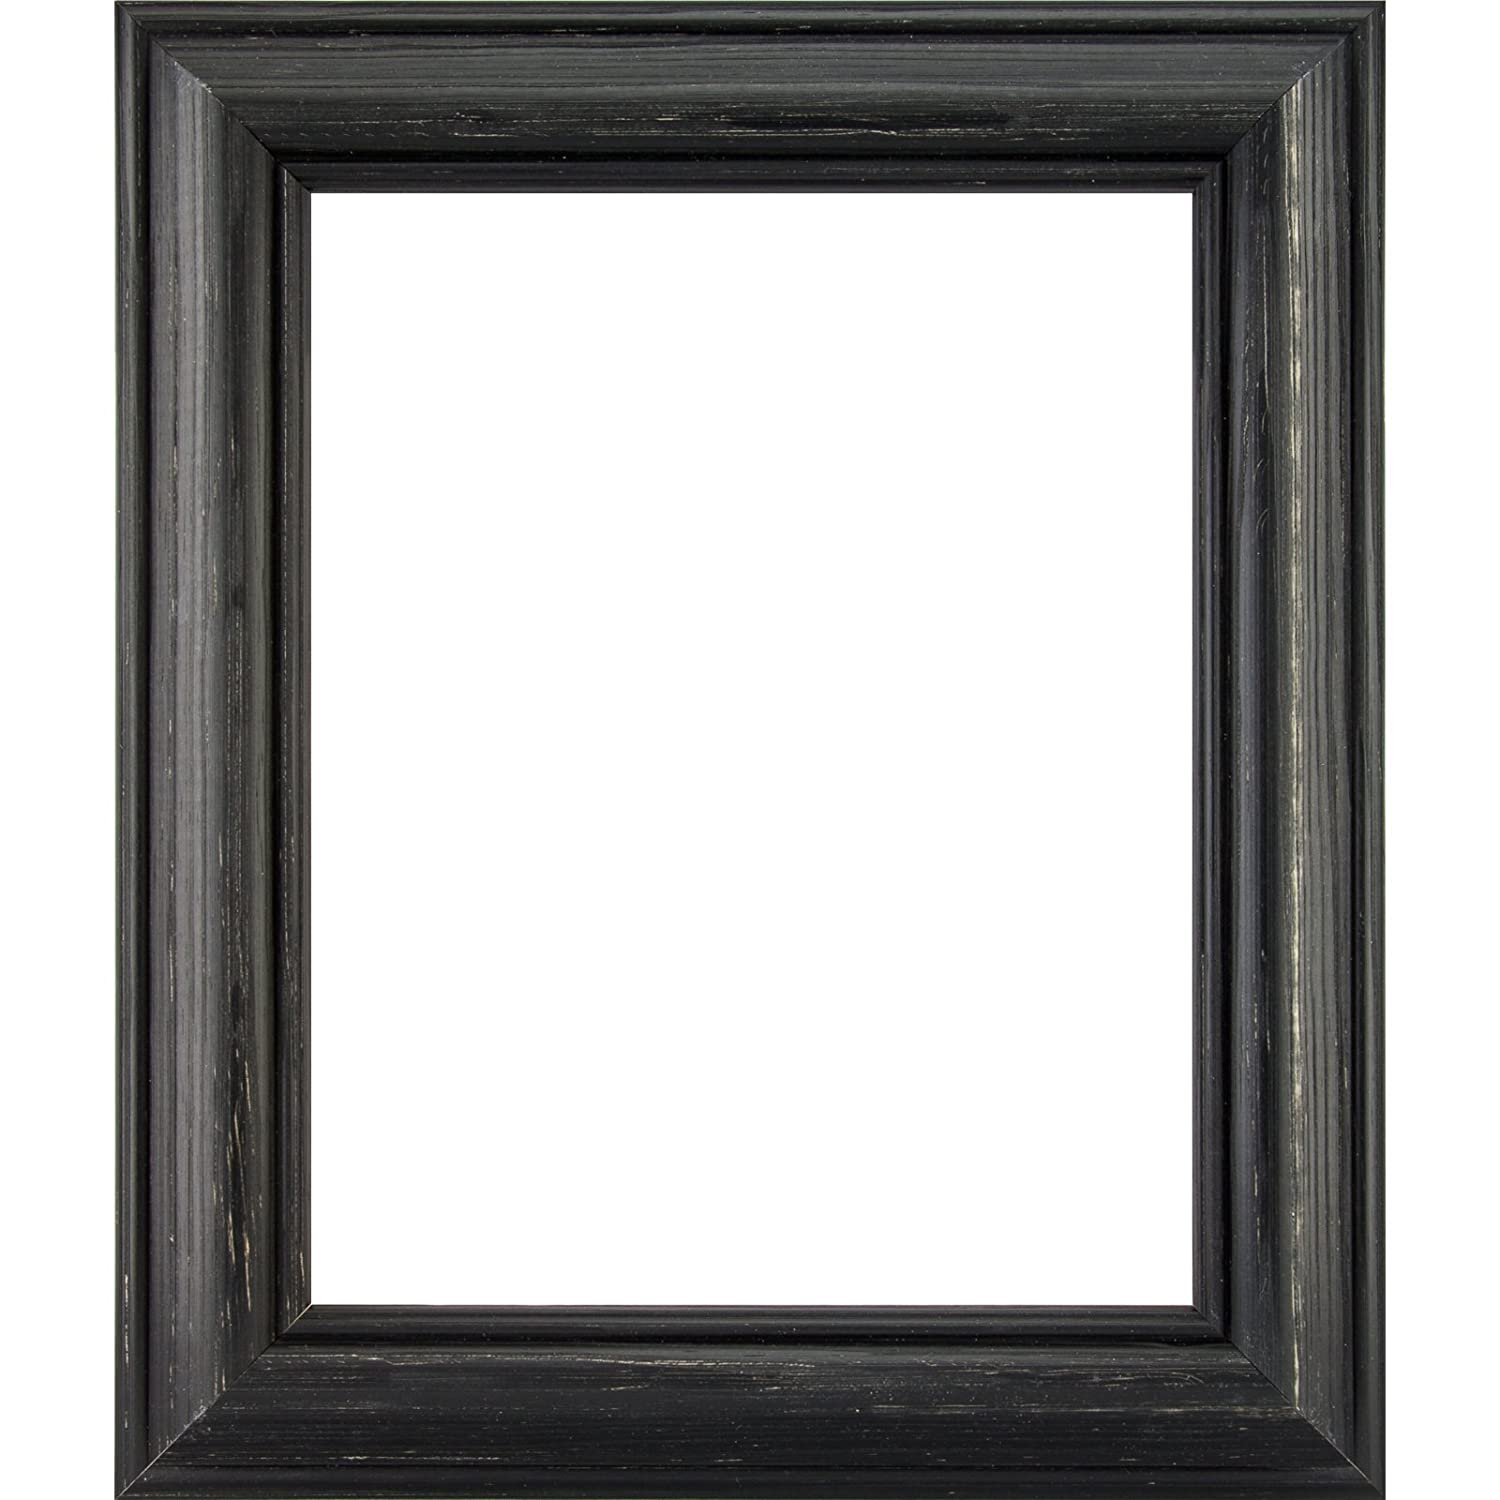 Craig Frames Wiltshire 262 Empty Vermont Maple Picture Frame 16 by 22-Inch Ash Frame Shell 1.825-Inch Wide Natural Hardwood